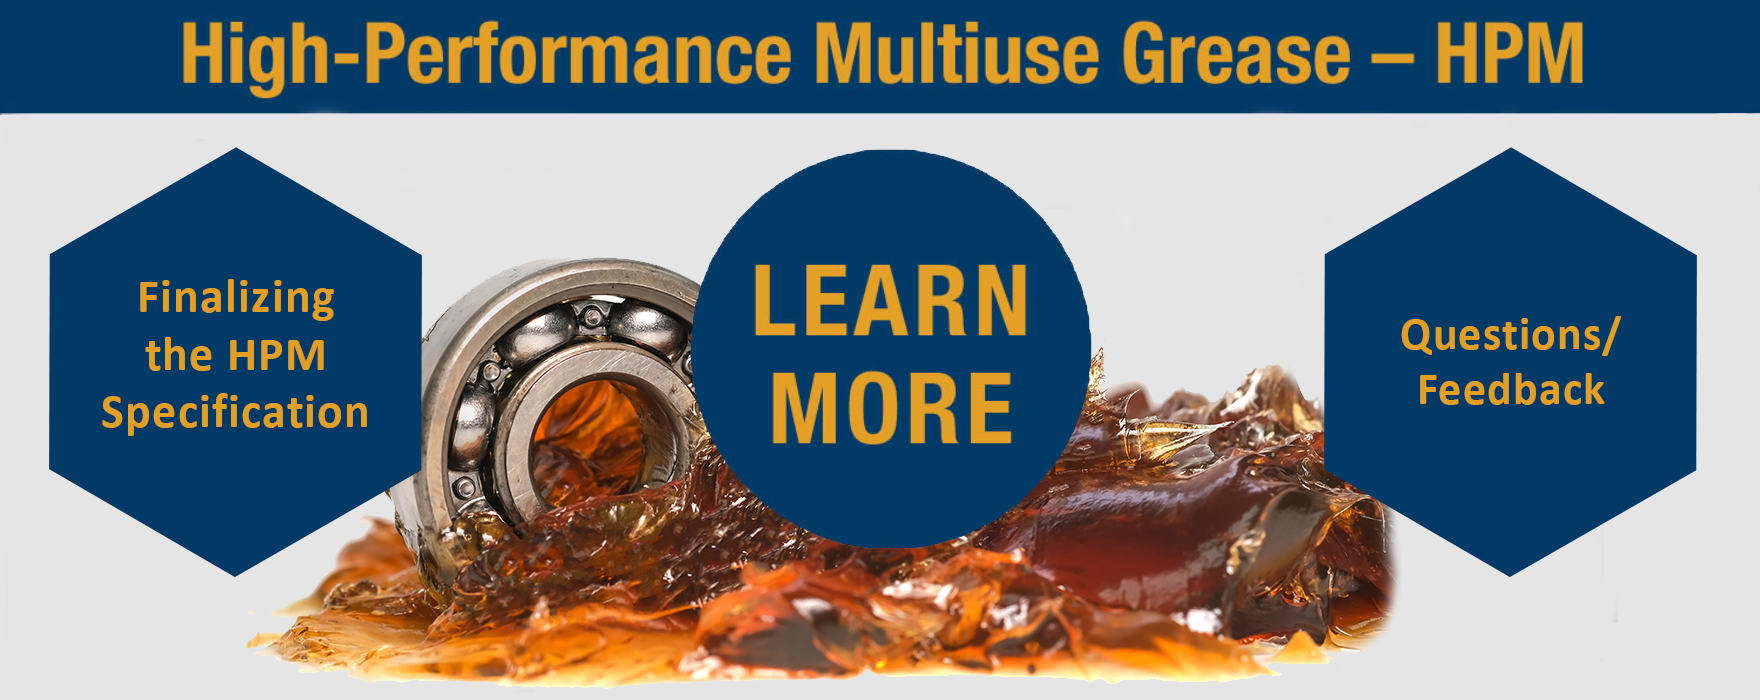 High-Performance Multiuse Grease